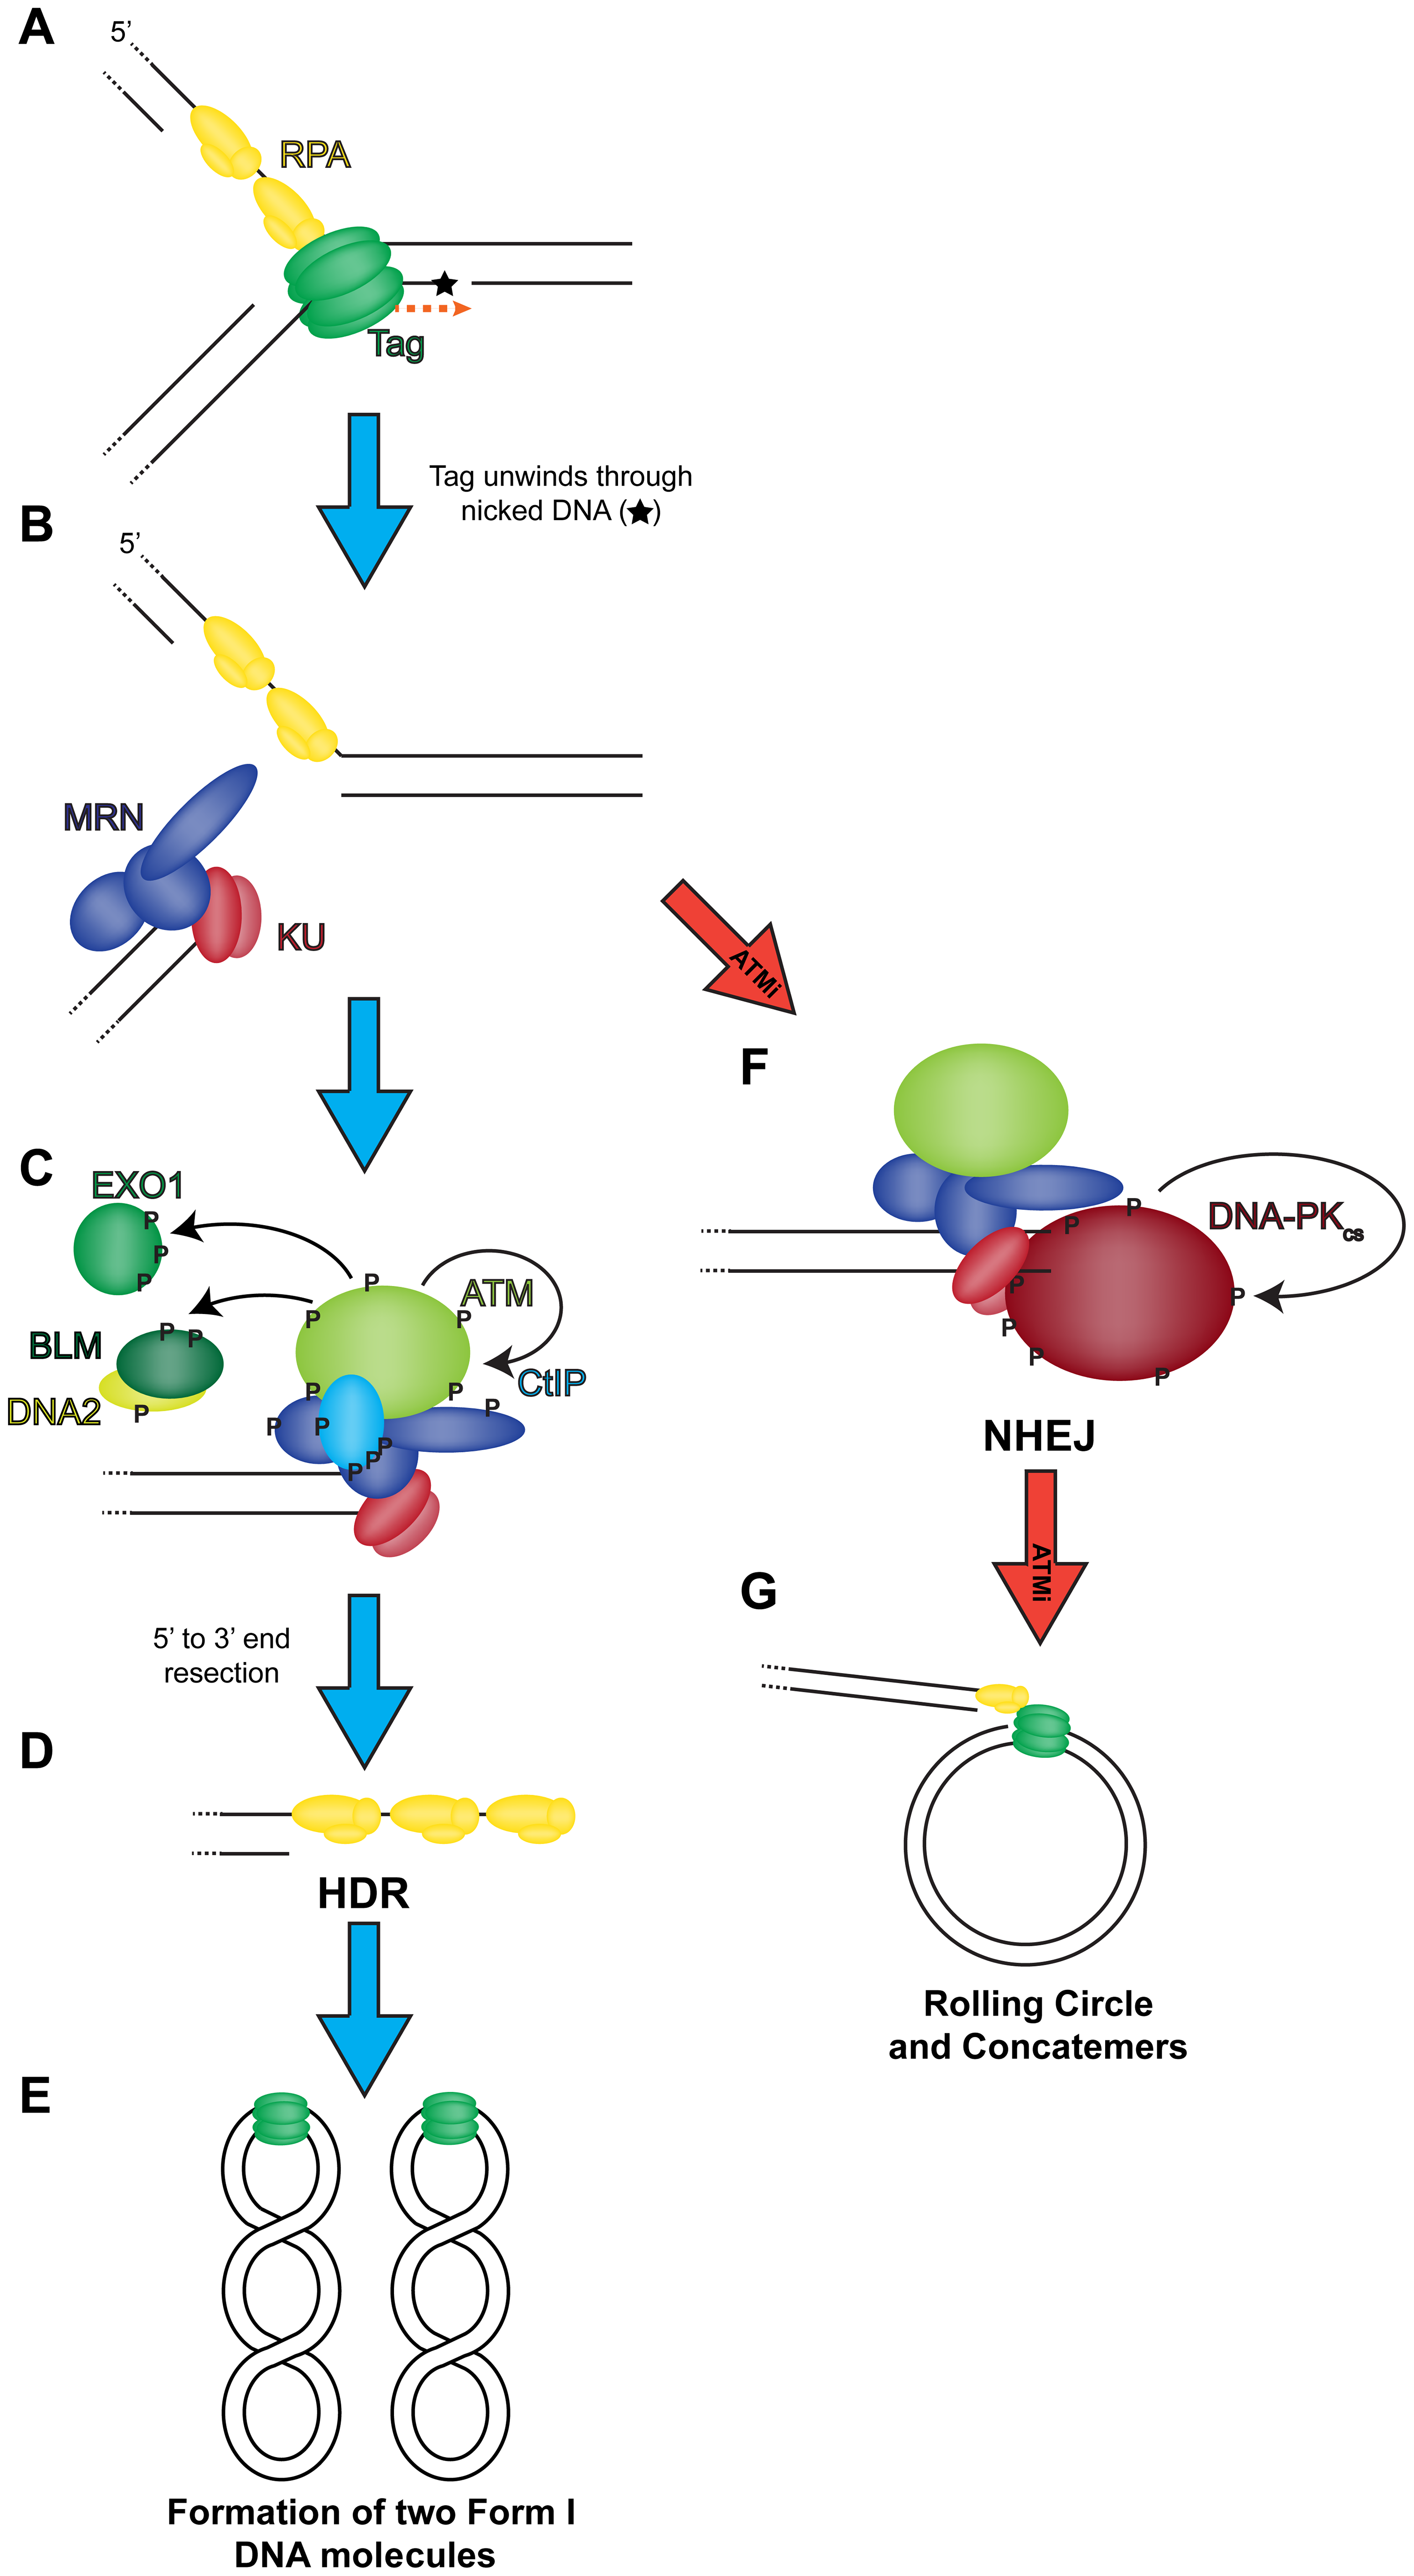 Model of the role of DNA double strand break repair during SV40 DNA replication.